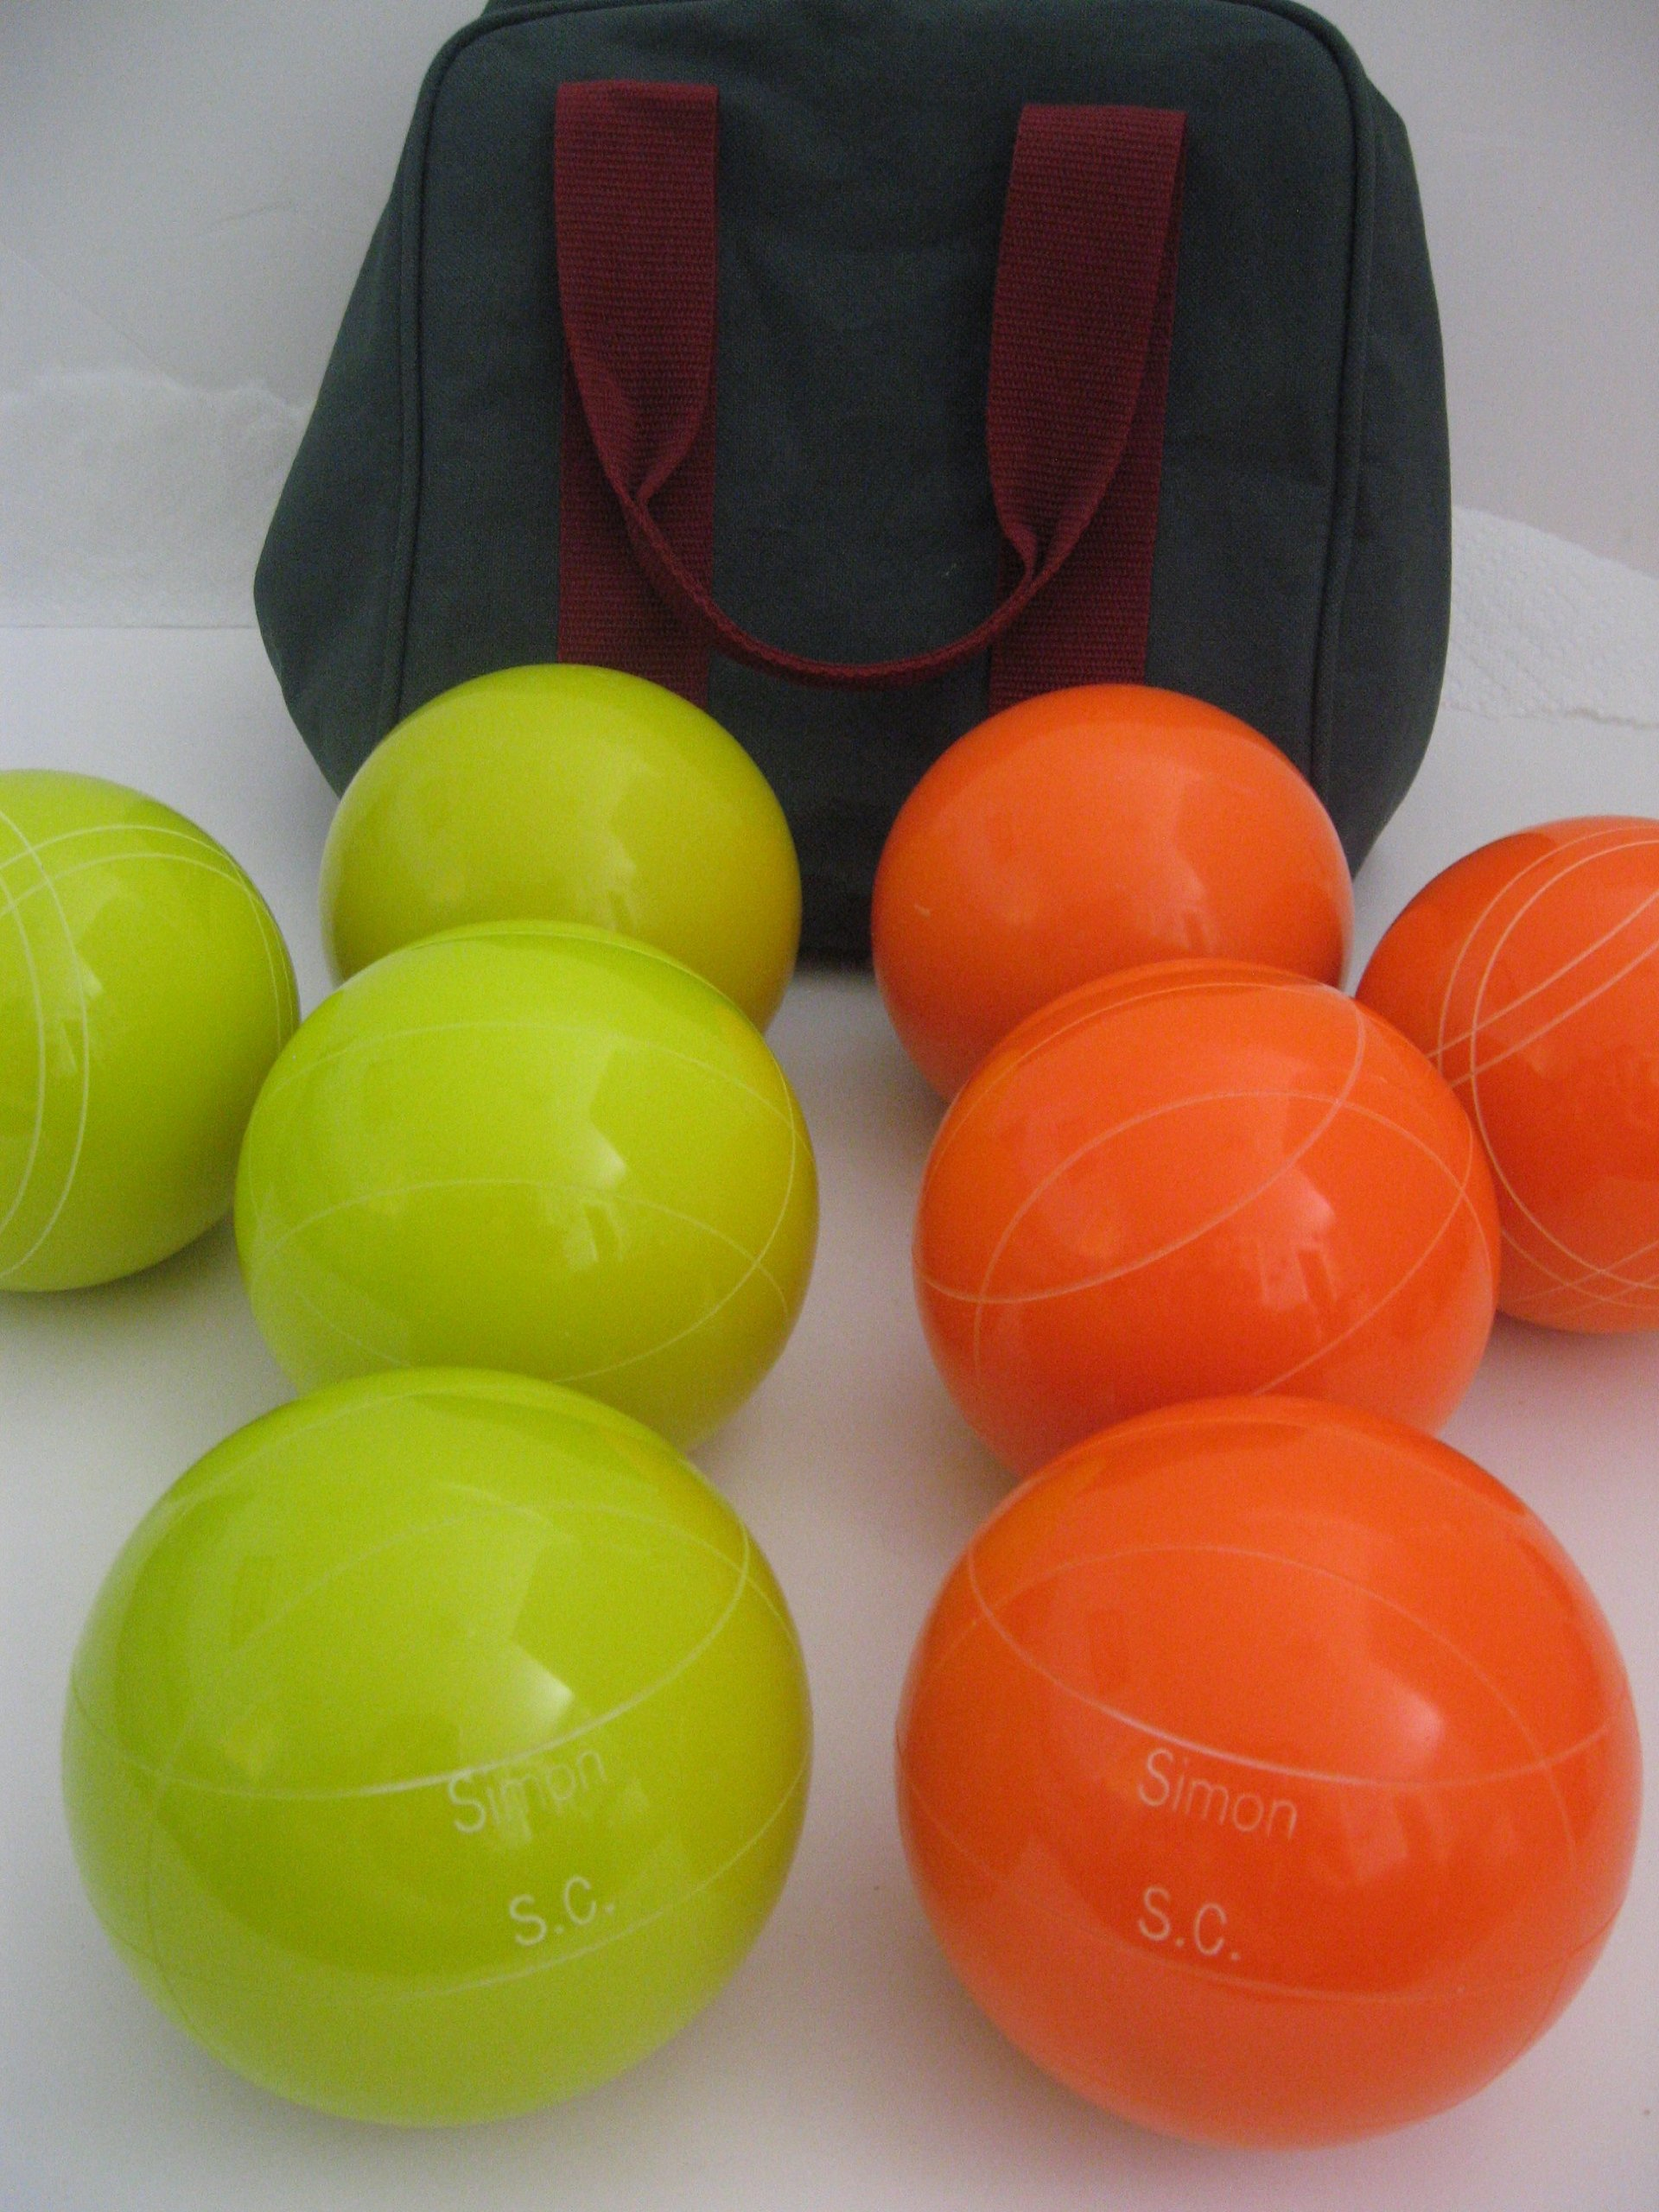 Premium Quality Engraved Bocce Package - 110mm Epco Yello and Orange Balls with Engraving